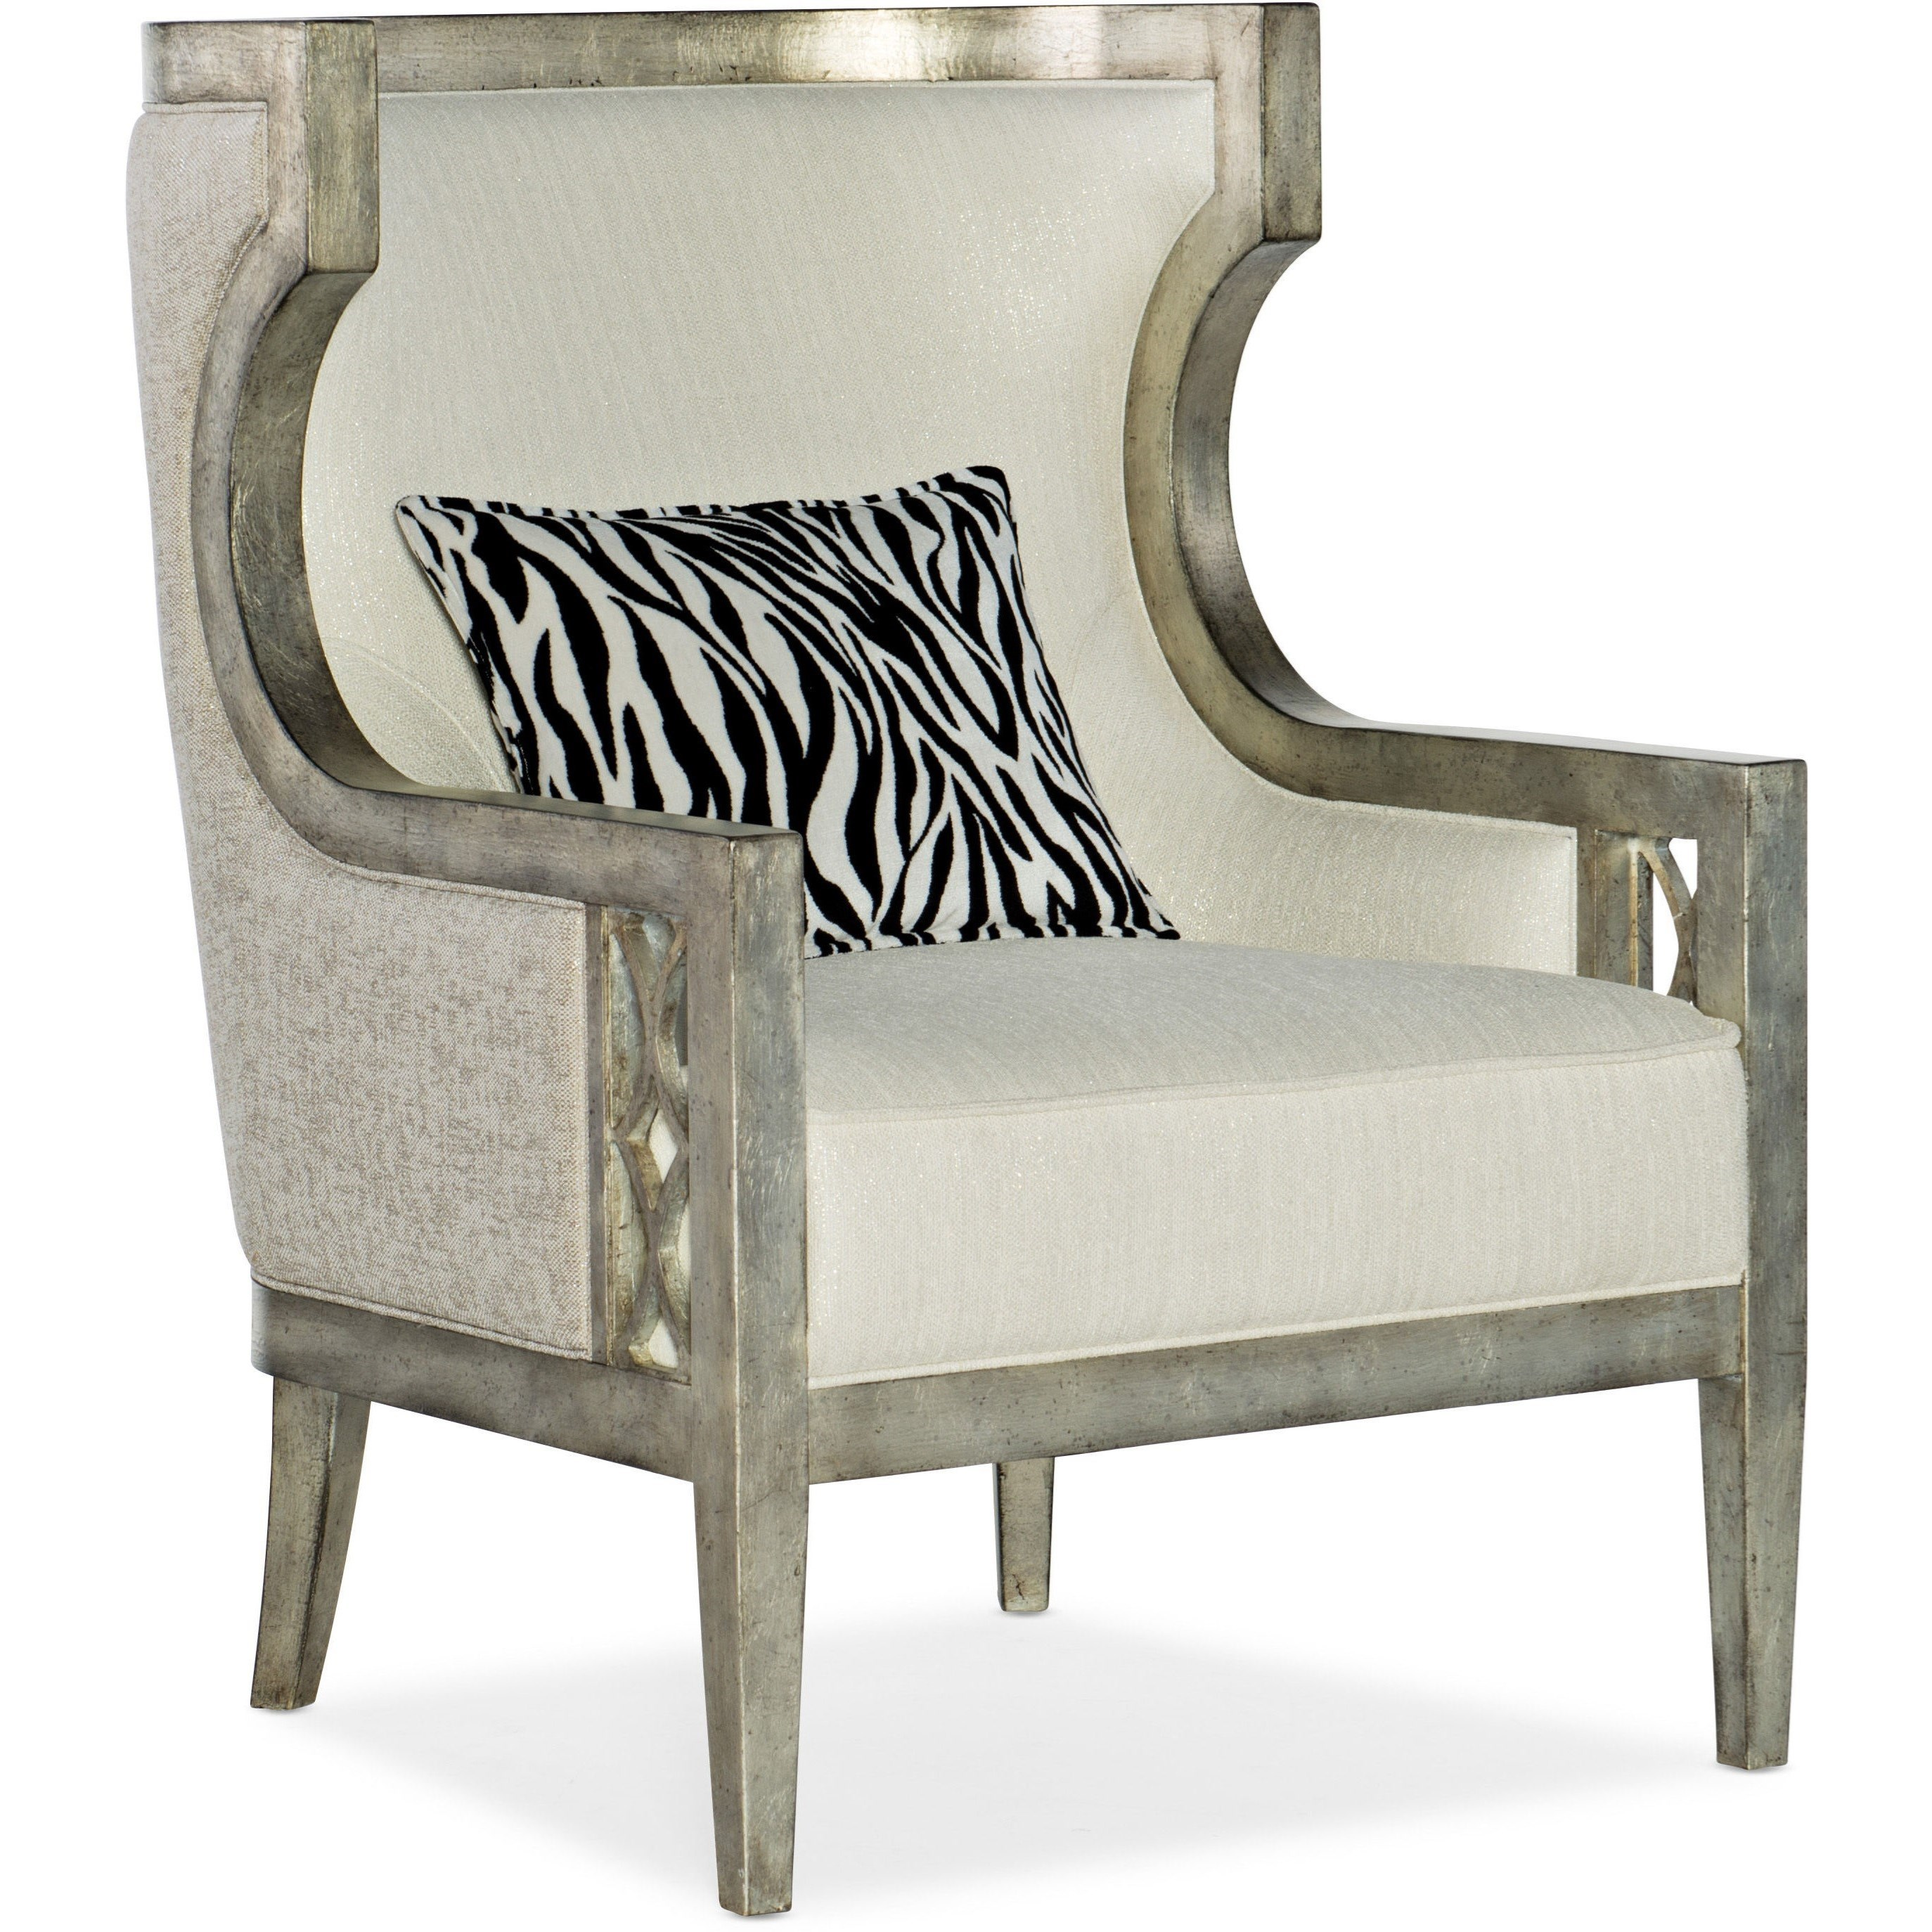 Sanctuary Debutant Wing Chair by Hooker Furniture at Baer's Furniture